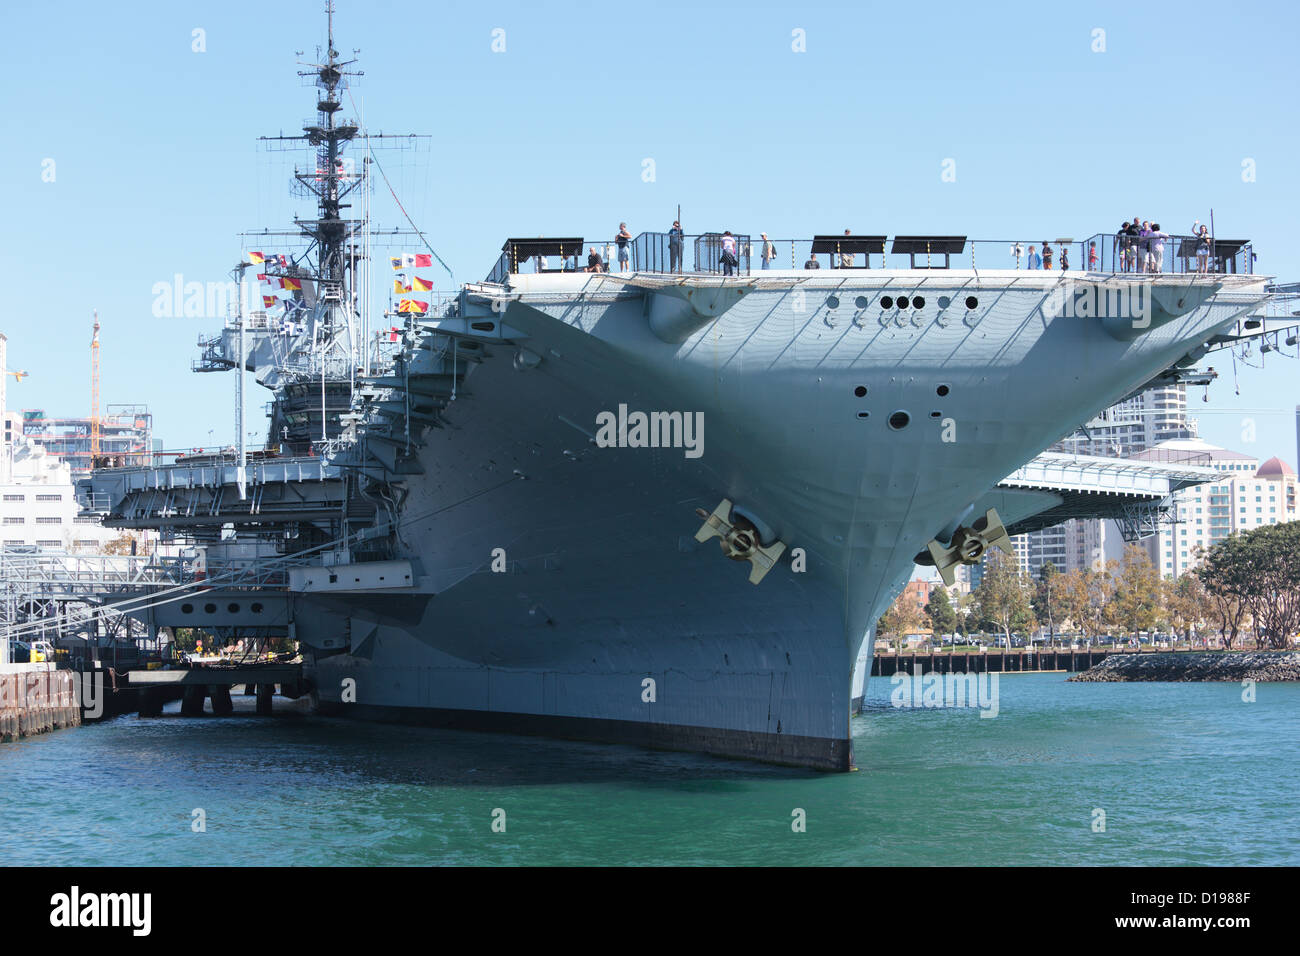 Uss Midway Aircraft Carrier In San Diego California Usa Stock Photo 52449839 Alamy